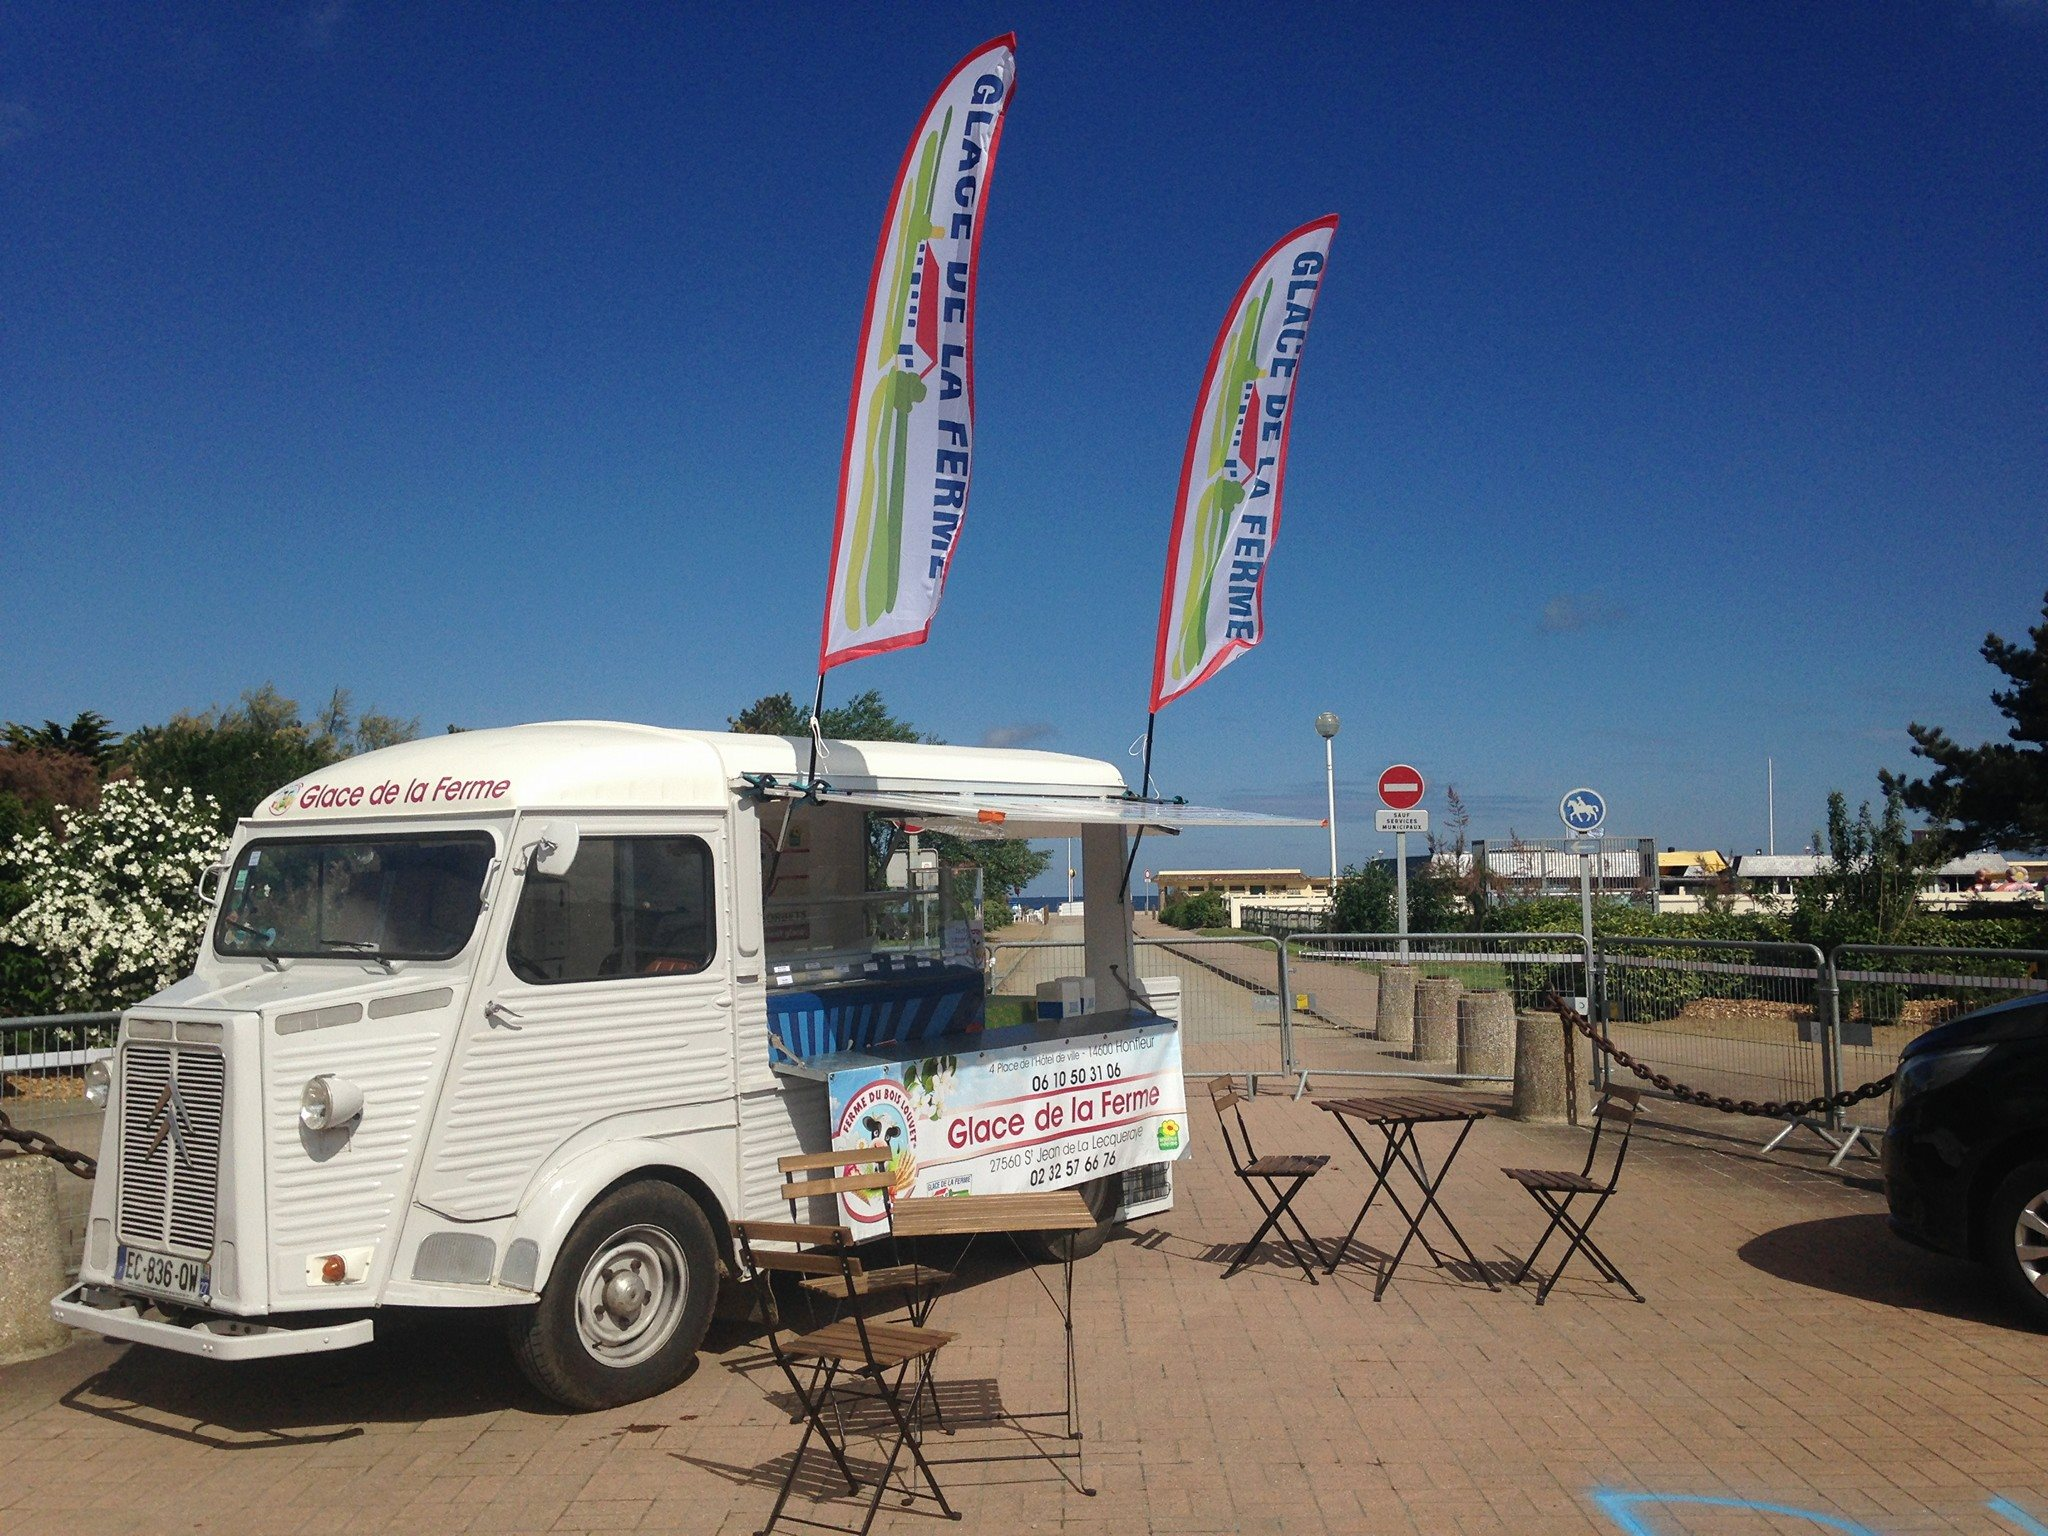 ice truck fermier glaces de la ferme evenement normandie eure calvados